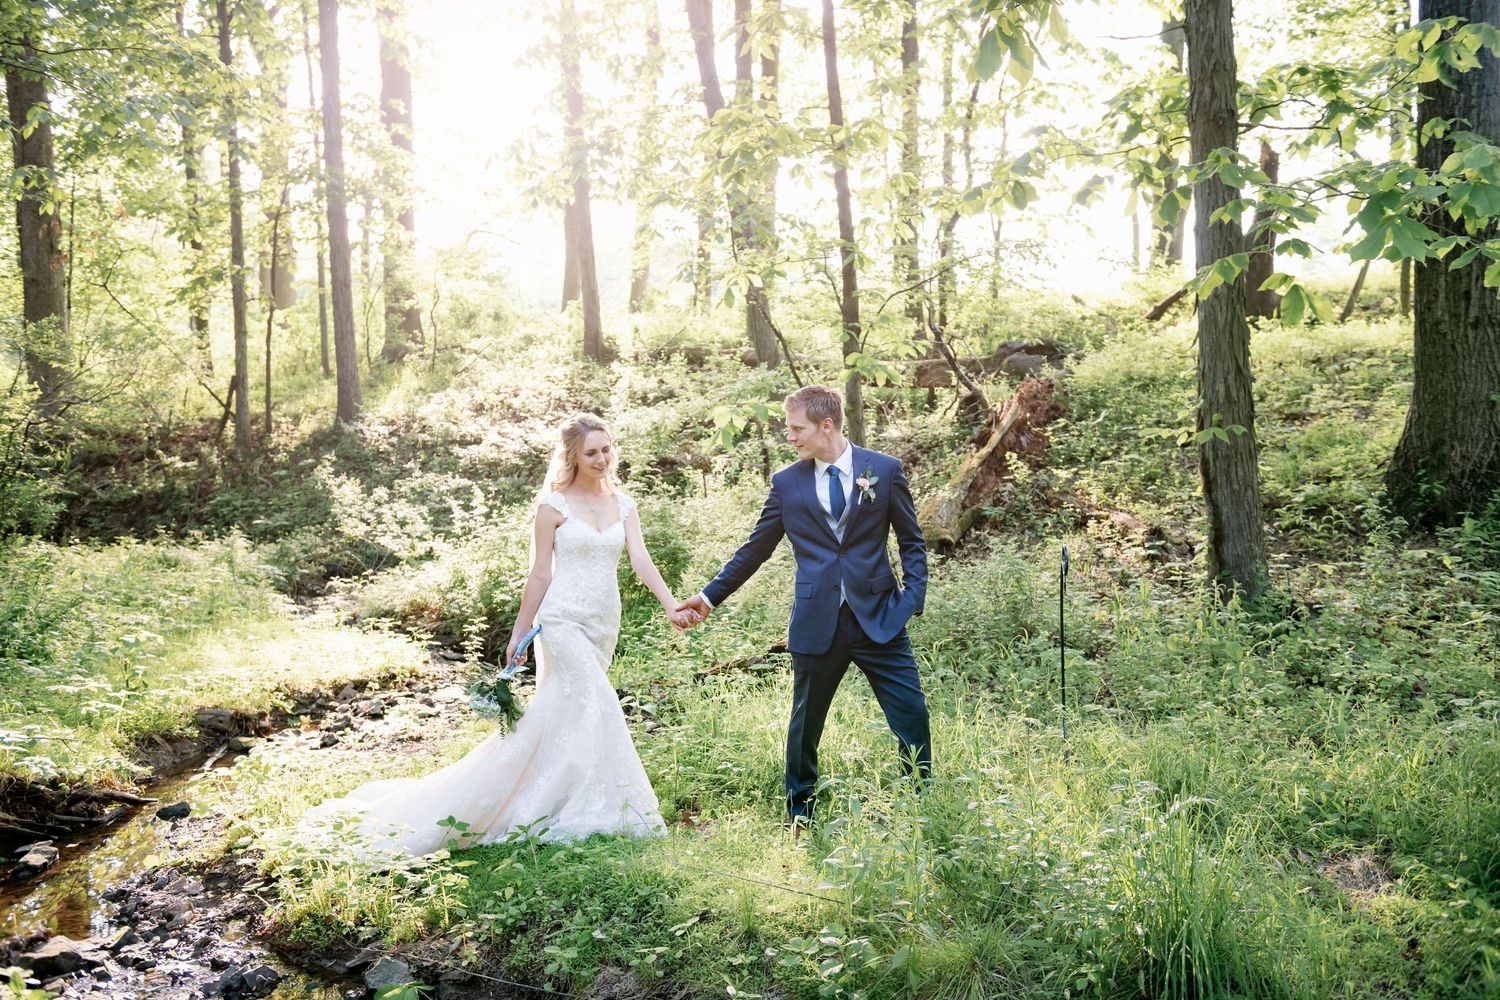 groom holding brides hand after backyard farm wedding in woods